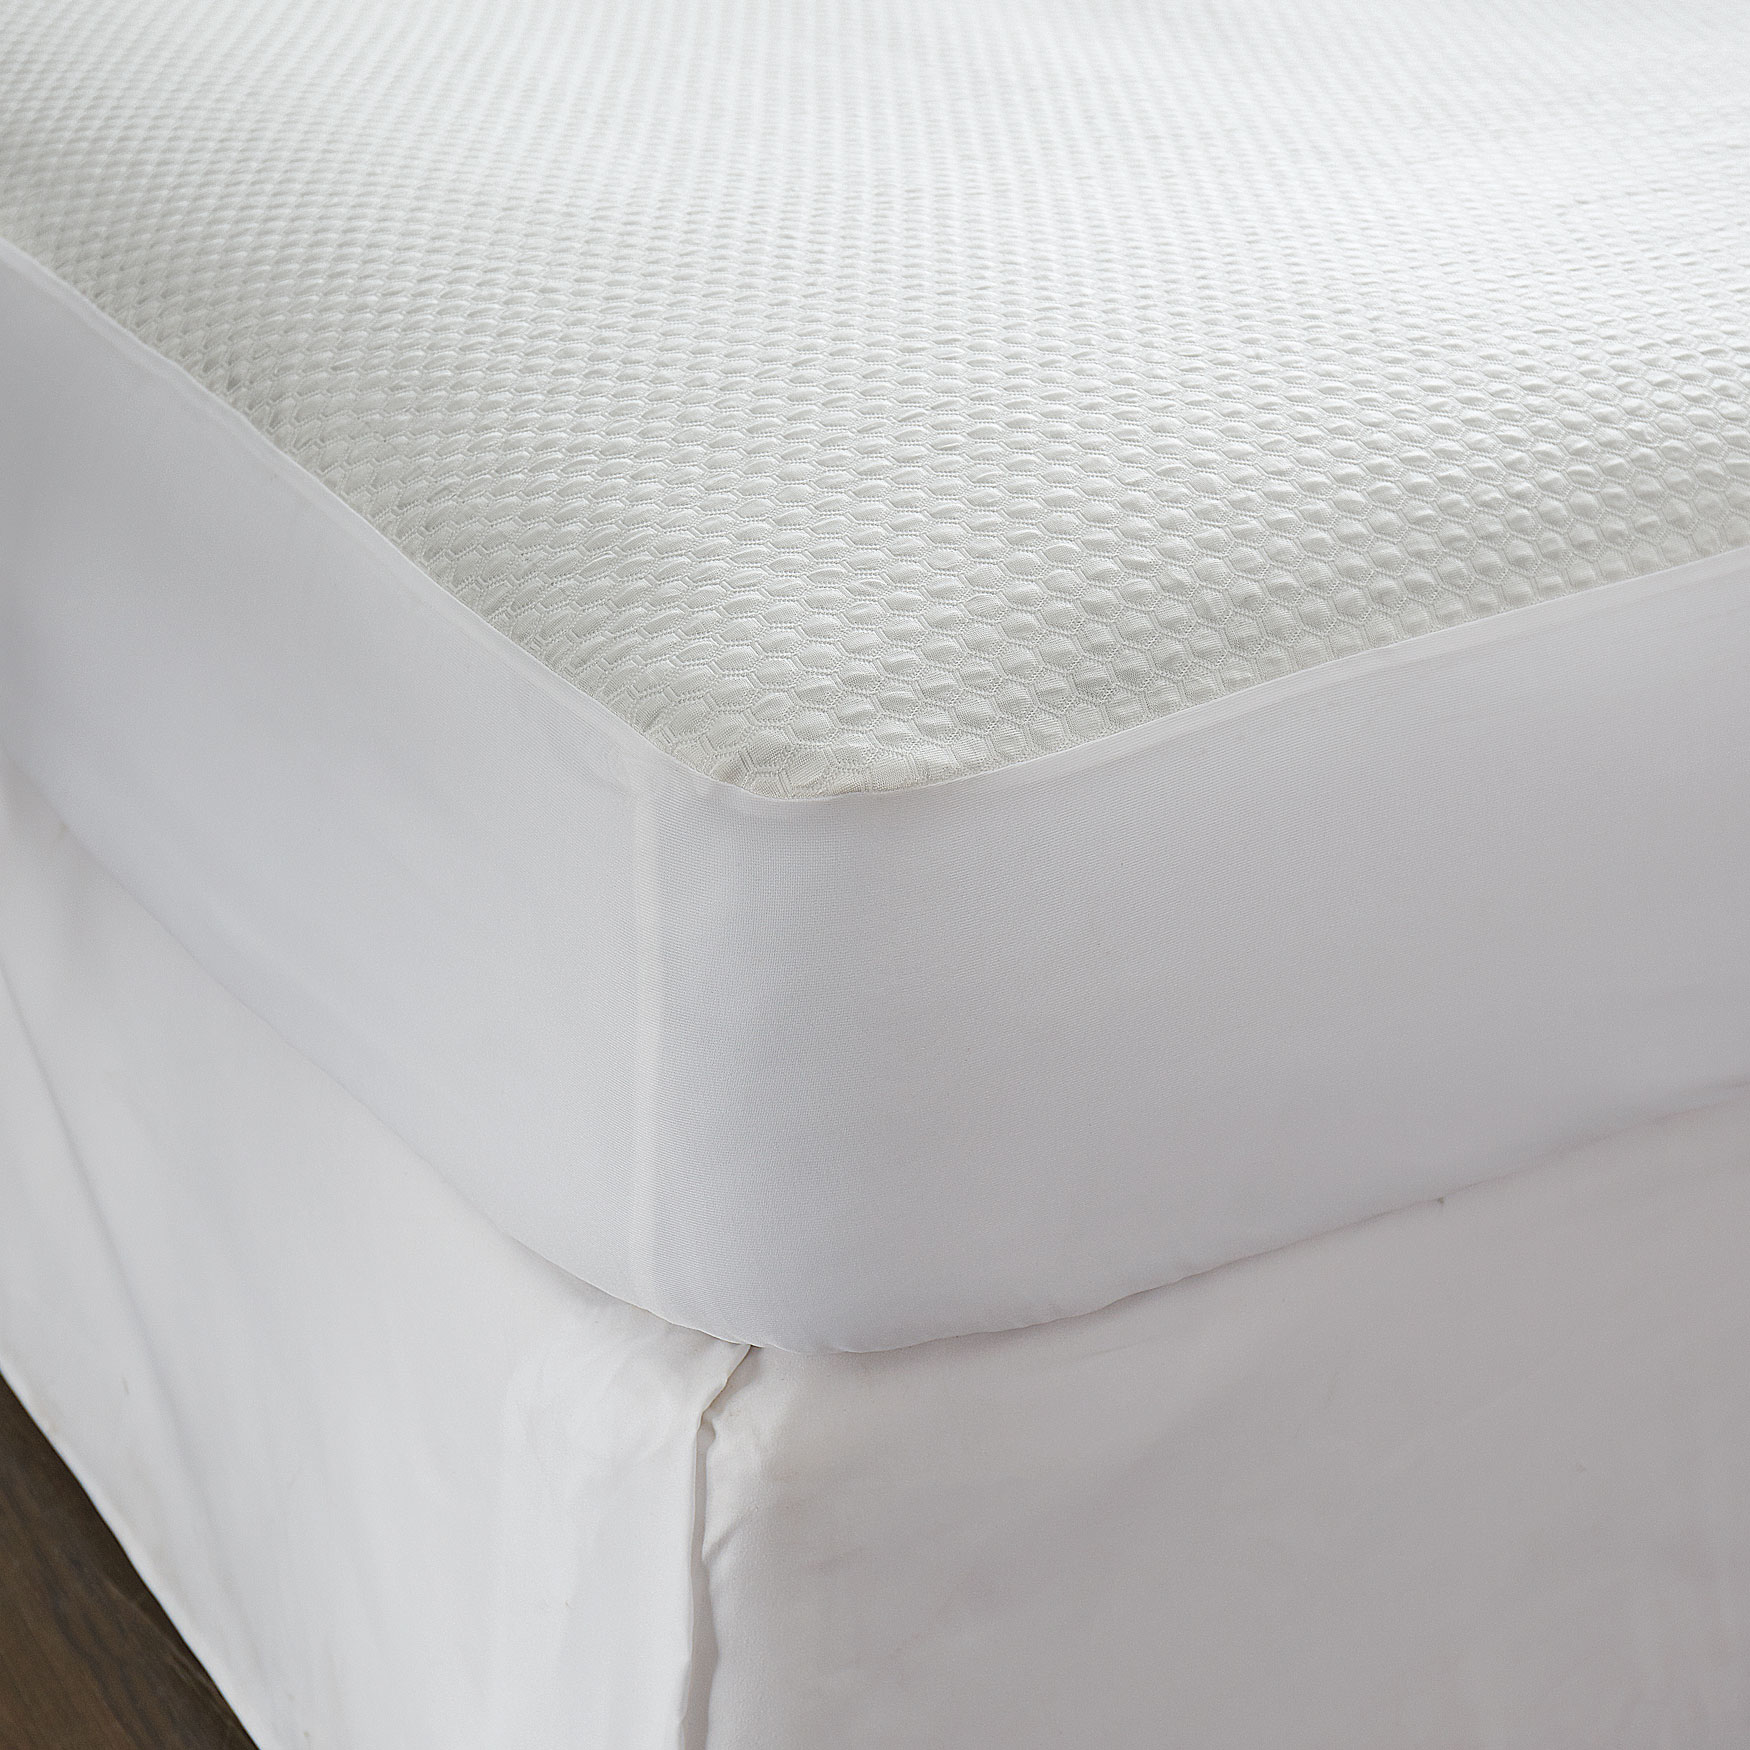 Super Cool Mattress Protector,